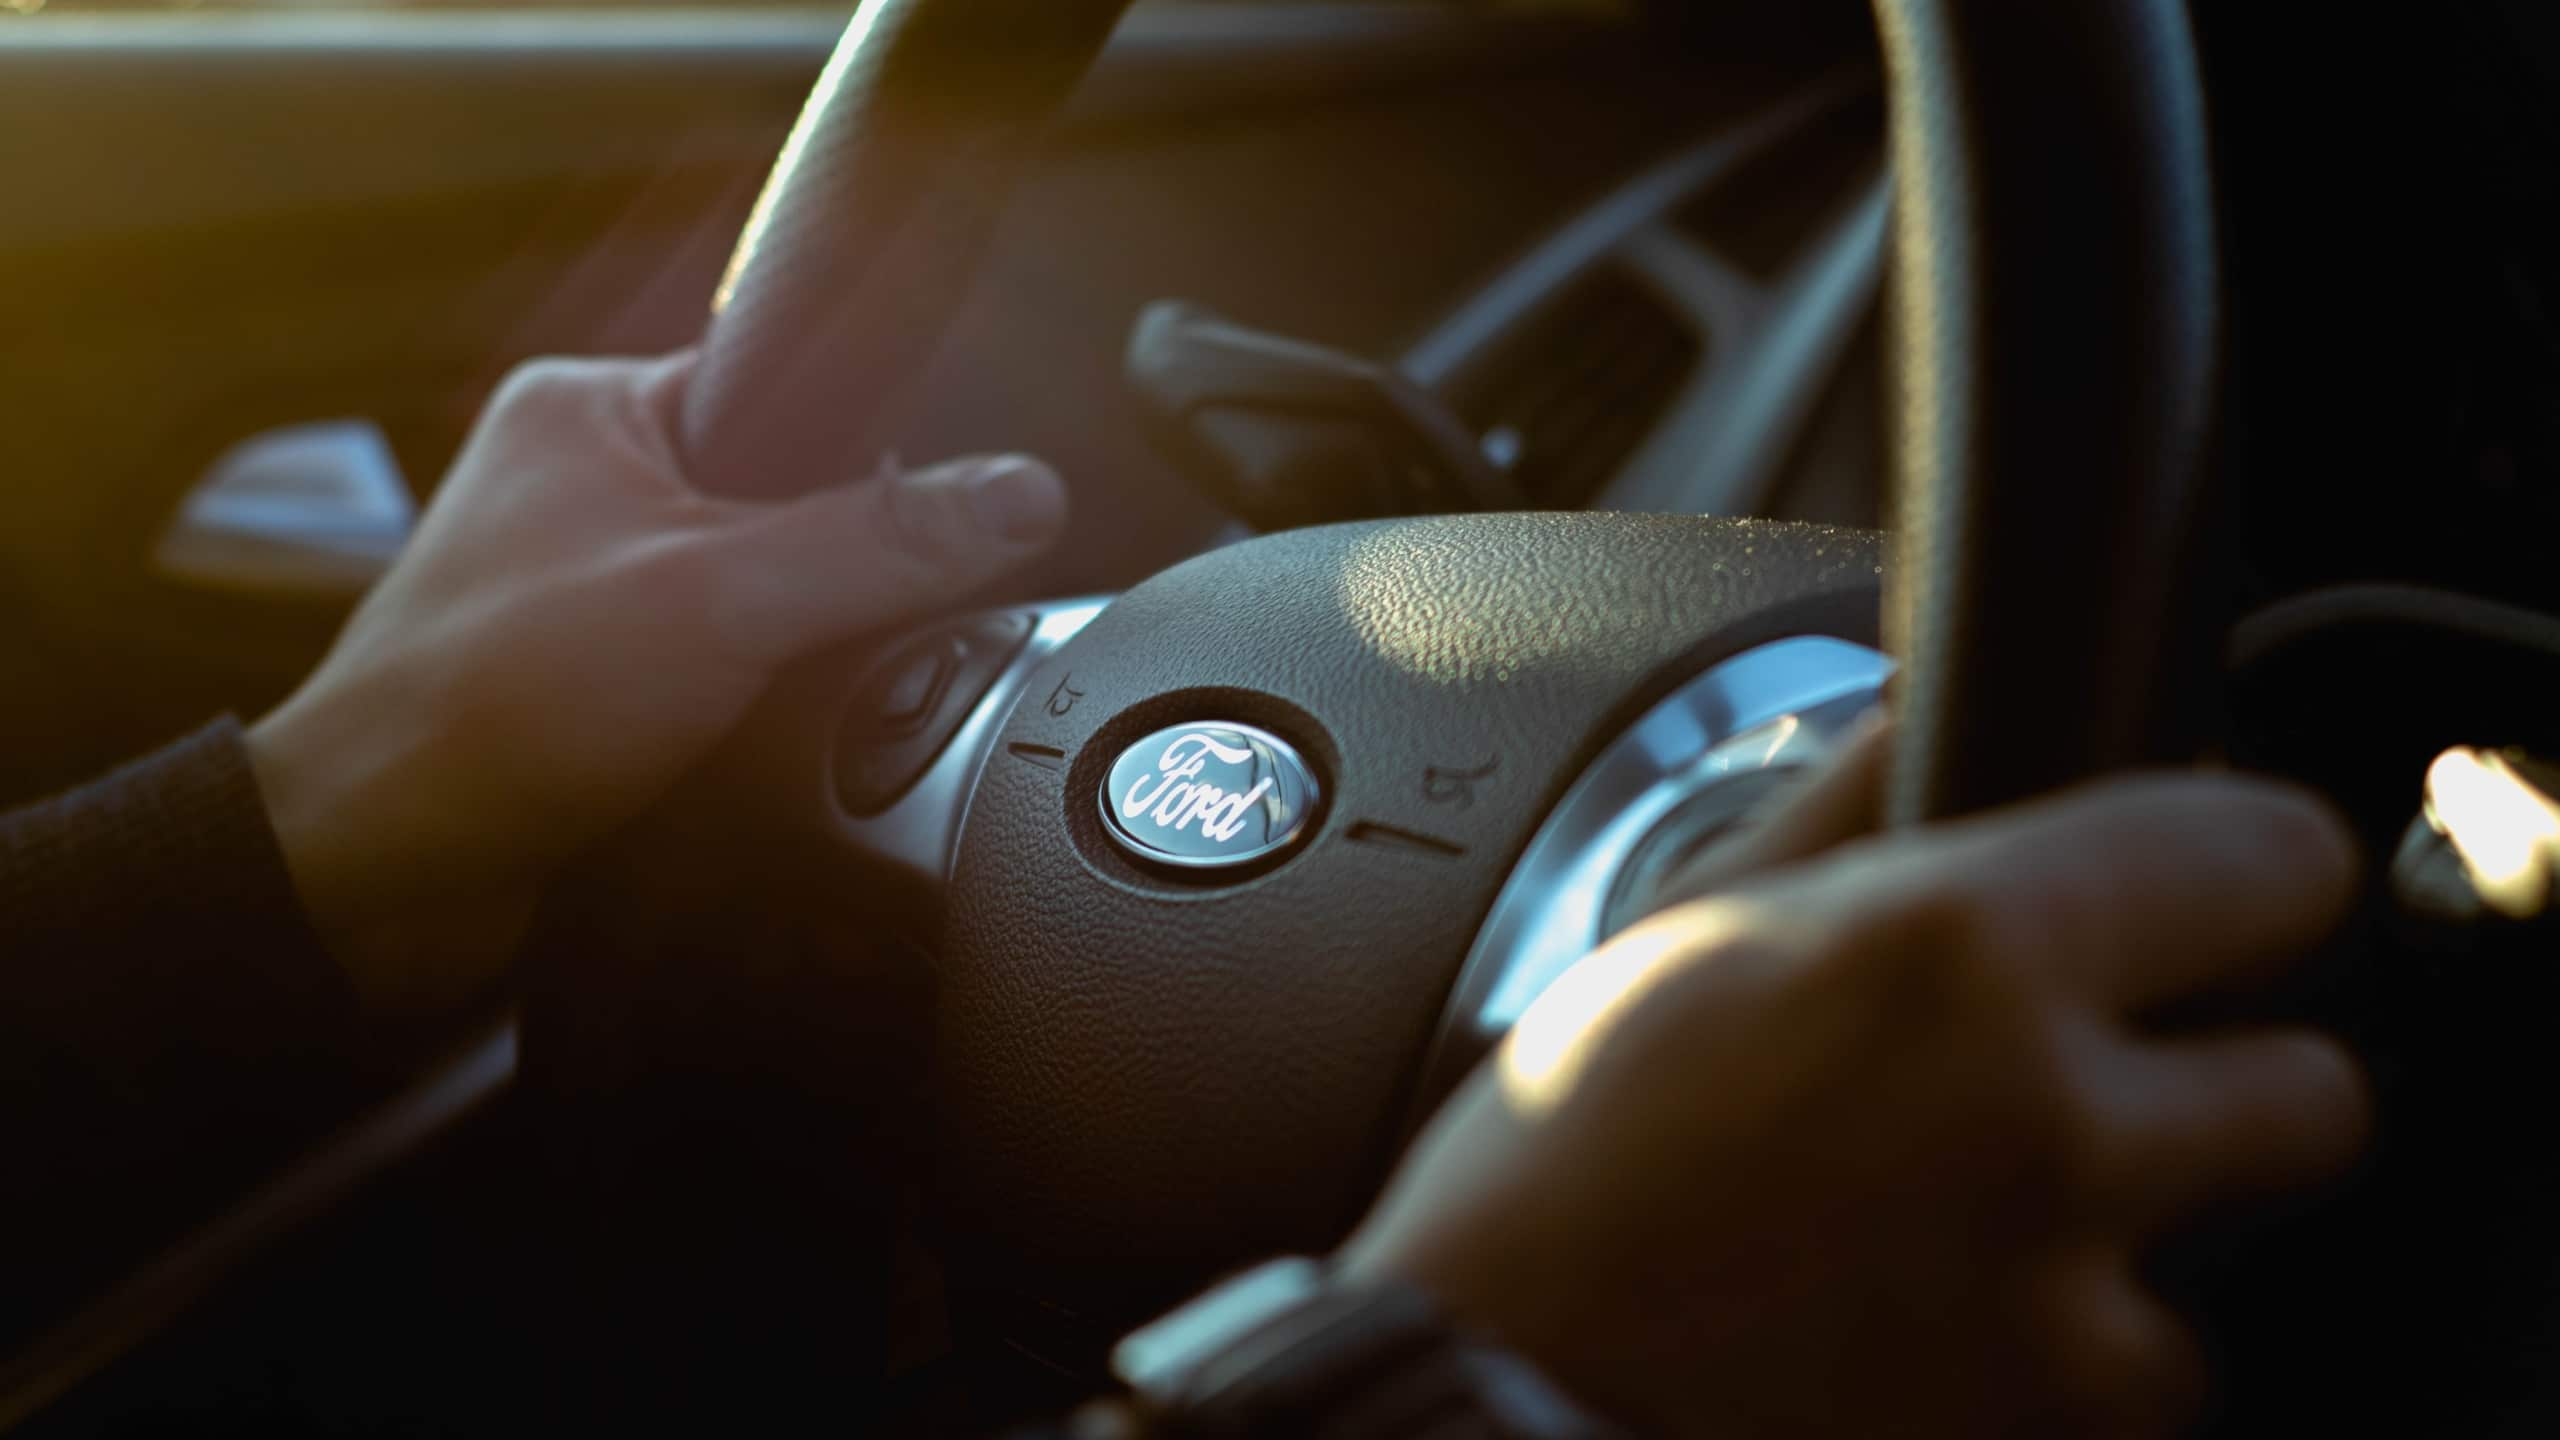 Person holding onto the steering wheel of a ford motor vehnicle